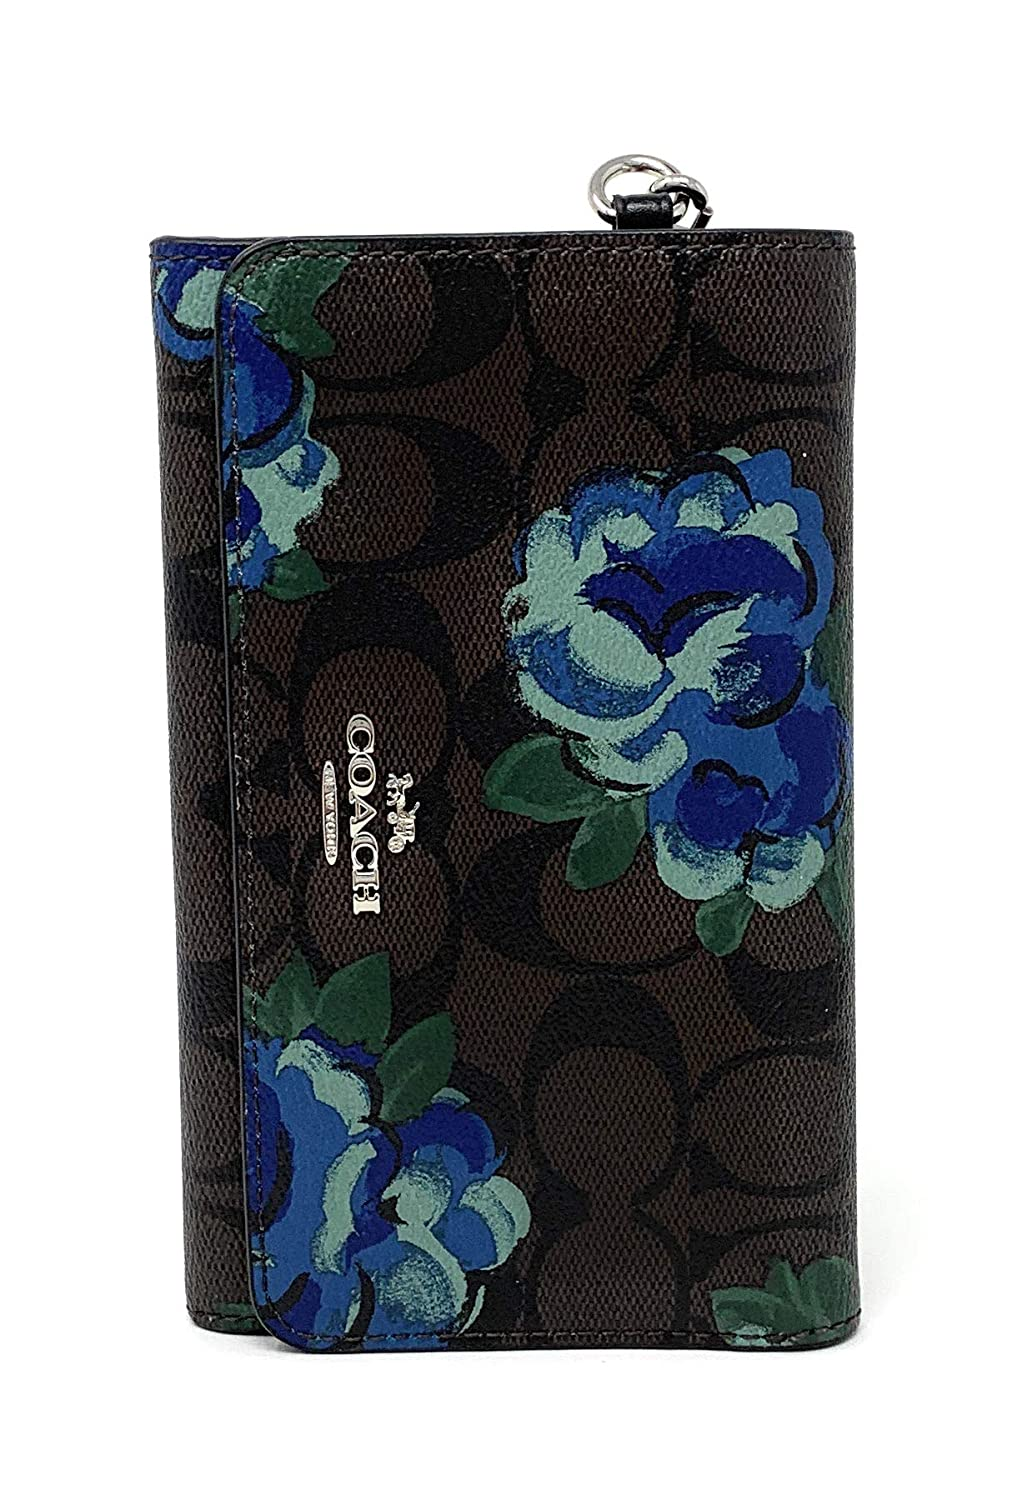 c95776785e4e Coach Flap Phone Wallet In Signature Canvas With Jumbo Floral Print (BROWN  BLACK MULTI SILVER) at Amazon Women s Clothing store